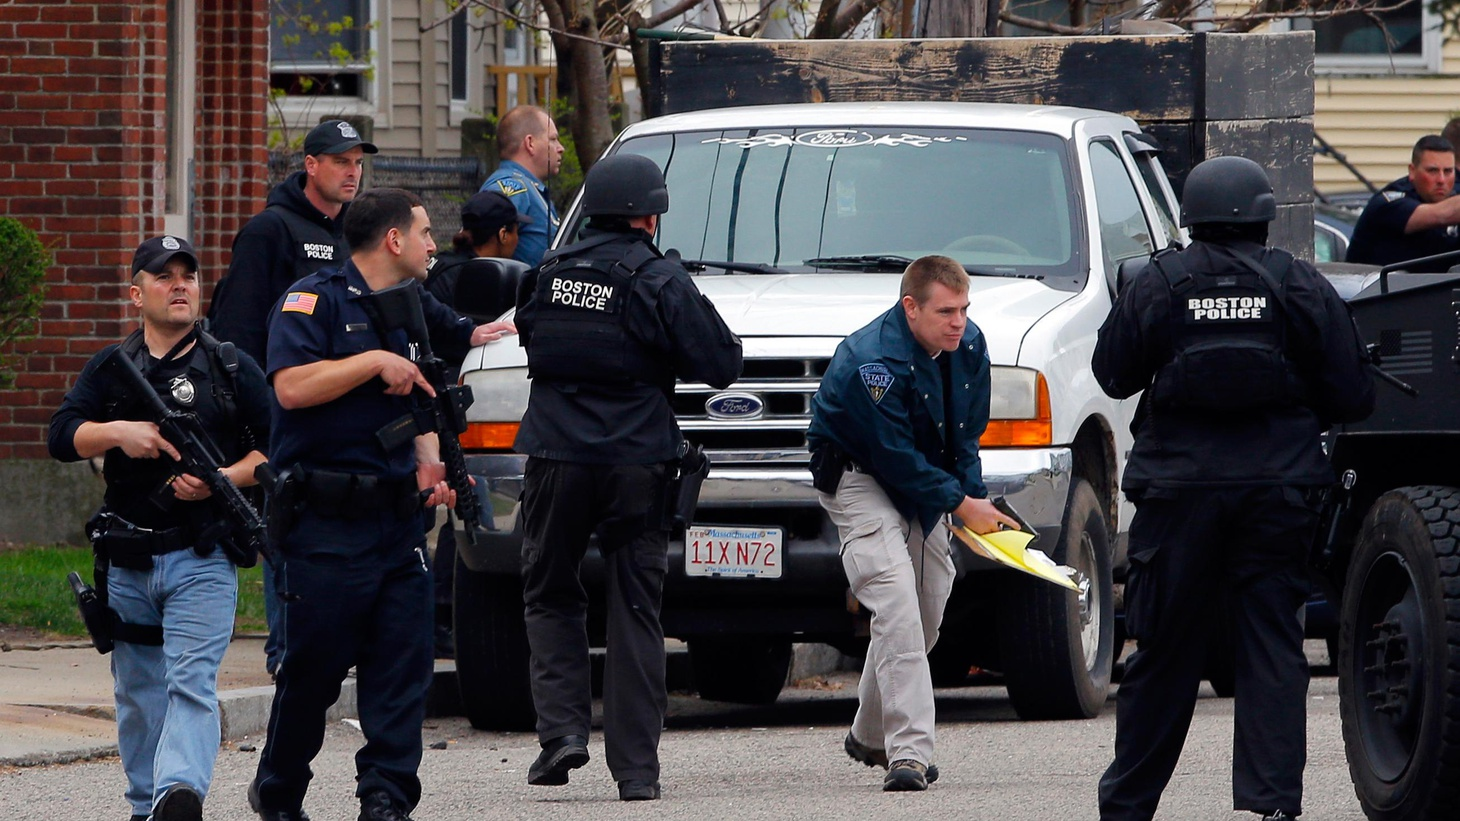 In less than 12 hours the FBI's two suspects were identified as brothers in Boston. We look at what's known about them and possible connections to their Chechen roots.